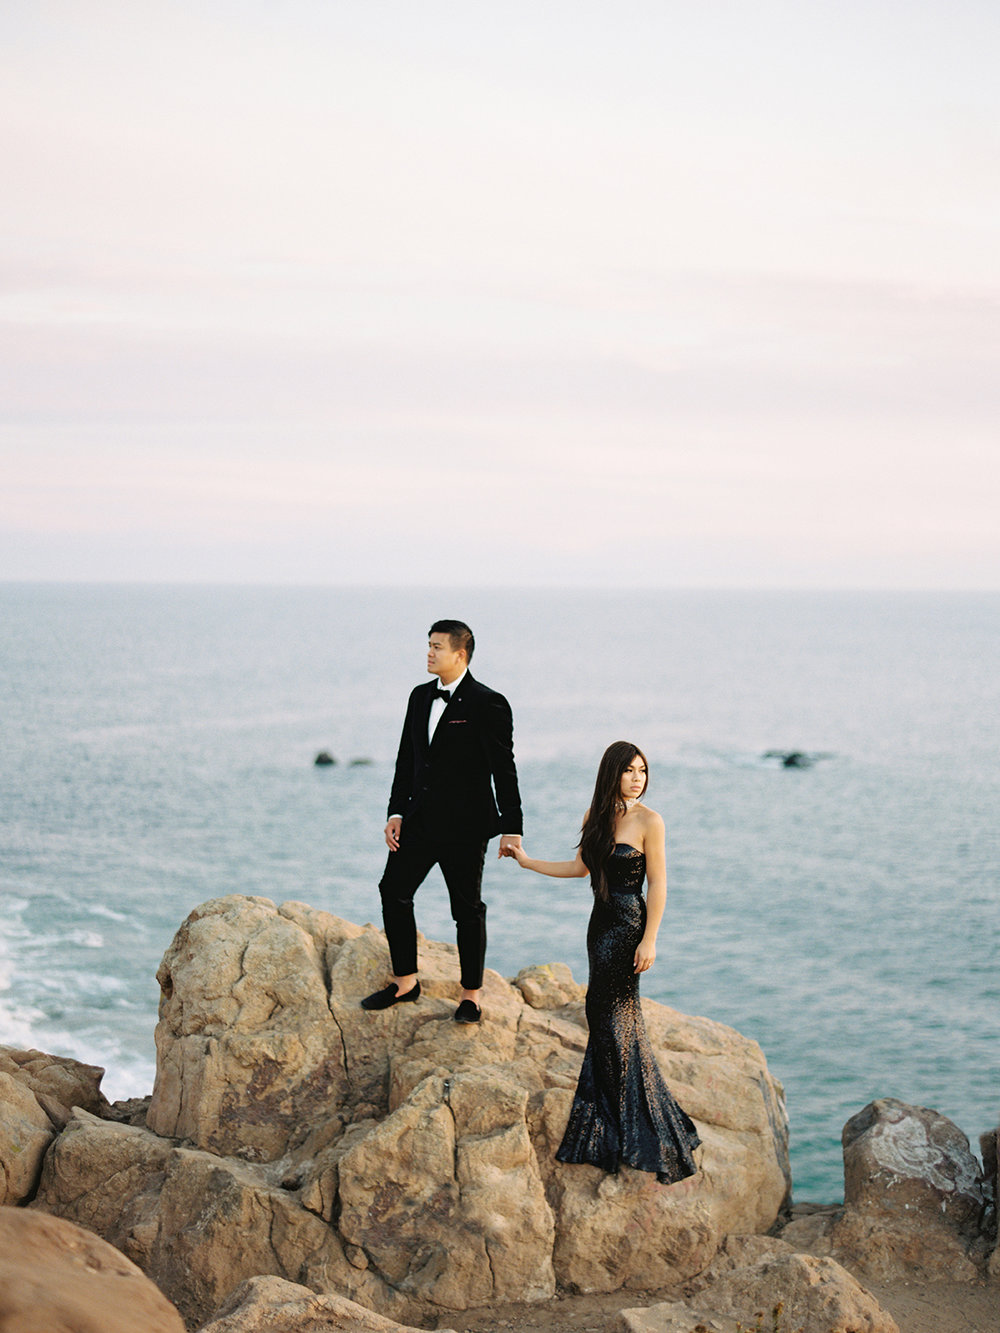 091-fine-art-film-photography-phillip-uyen-malibu-engagement-brumley-wells.jpg